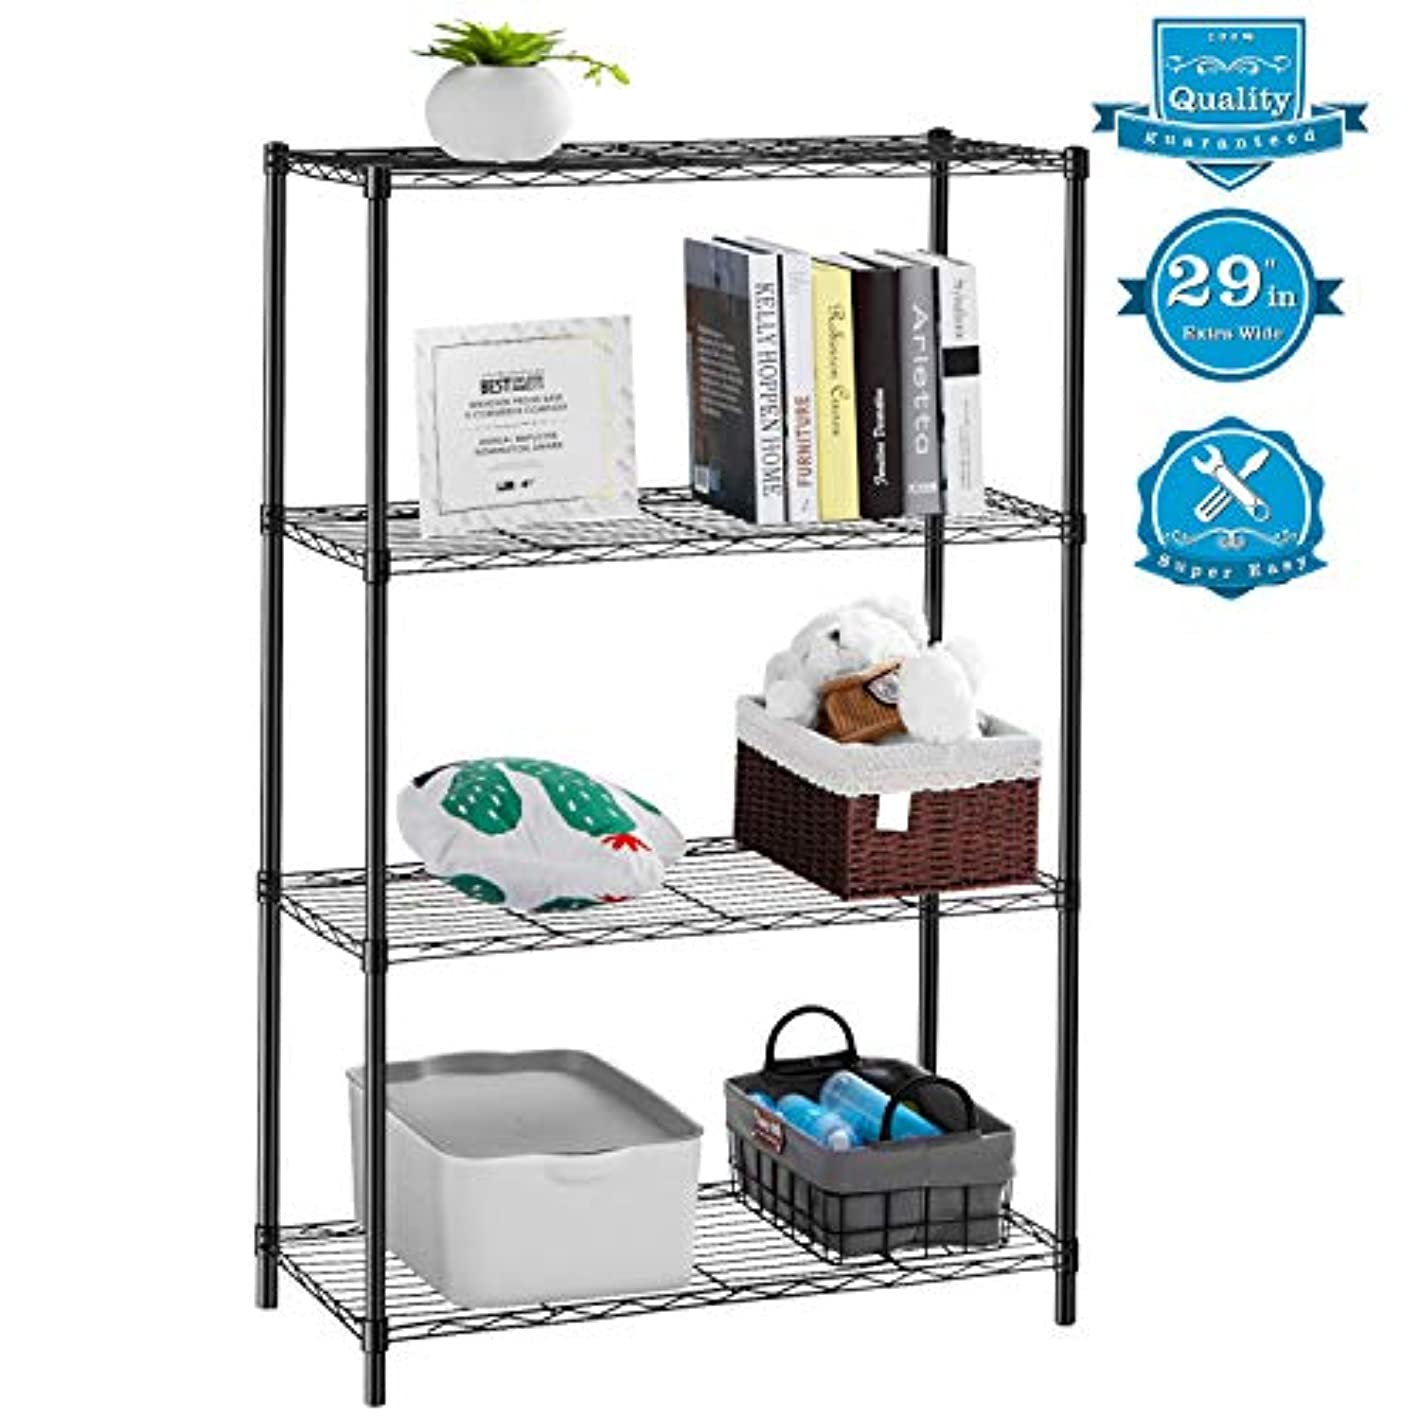 """AOOU Shelf 4-Tier Shelving Unit, 29"""" Extra Wide Wire Shelving for Large Storage, Classic Metal Steel Storage Rack Sturdy for use in Pantry, Living Room, Kitchen, Garage, Coated with Black"""